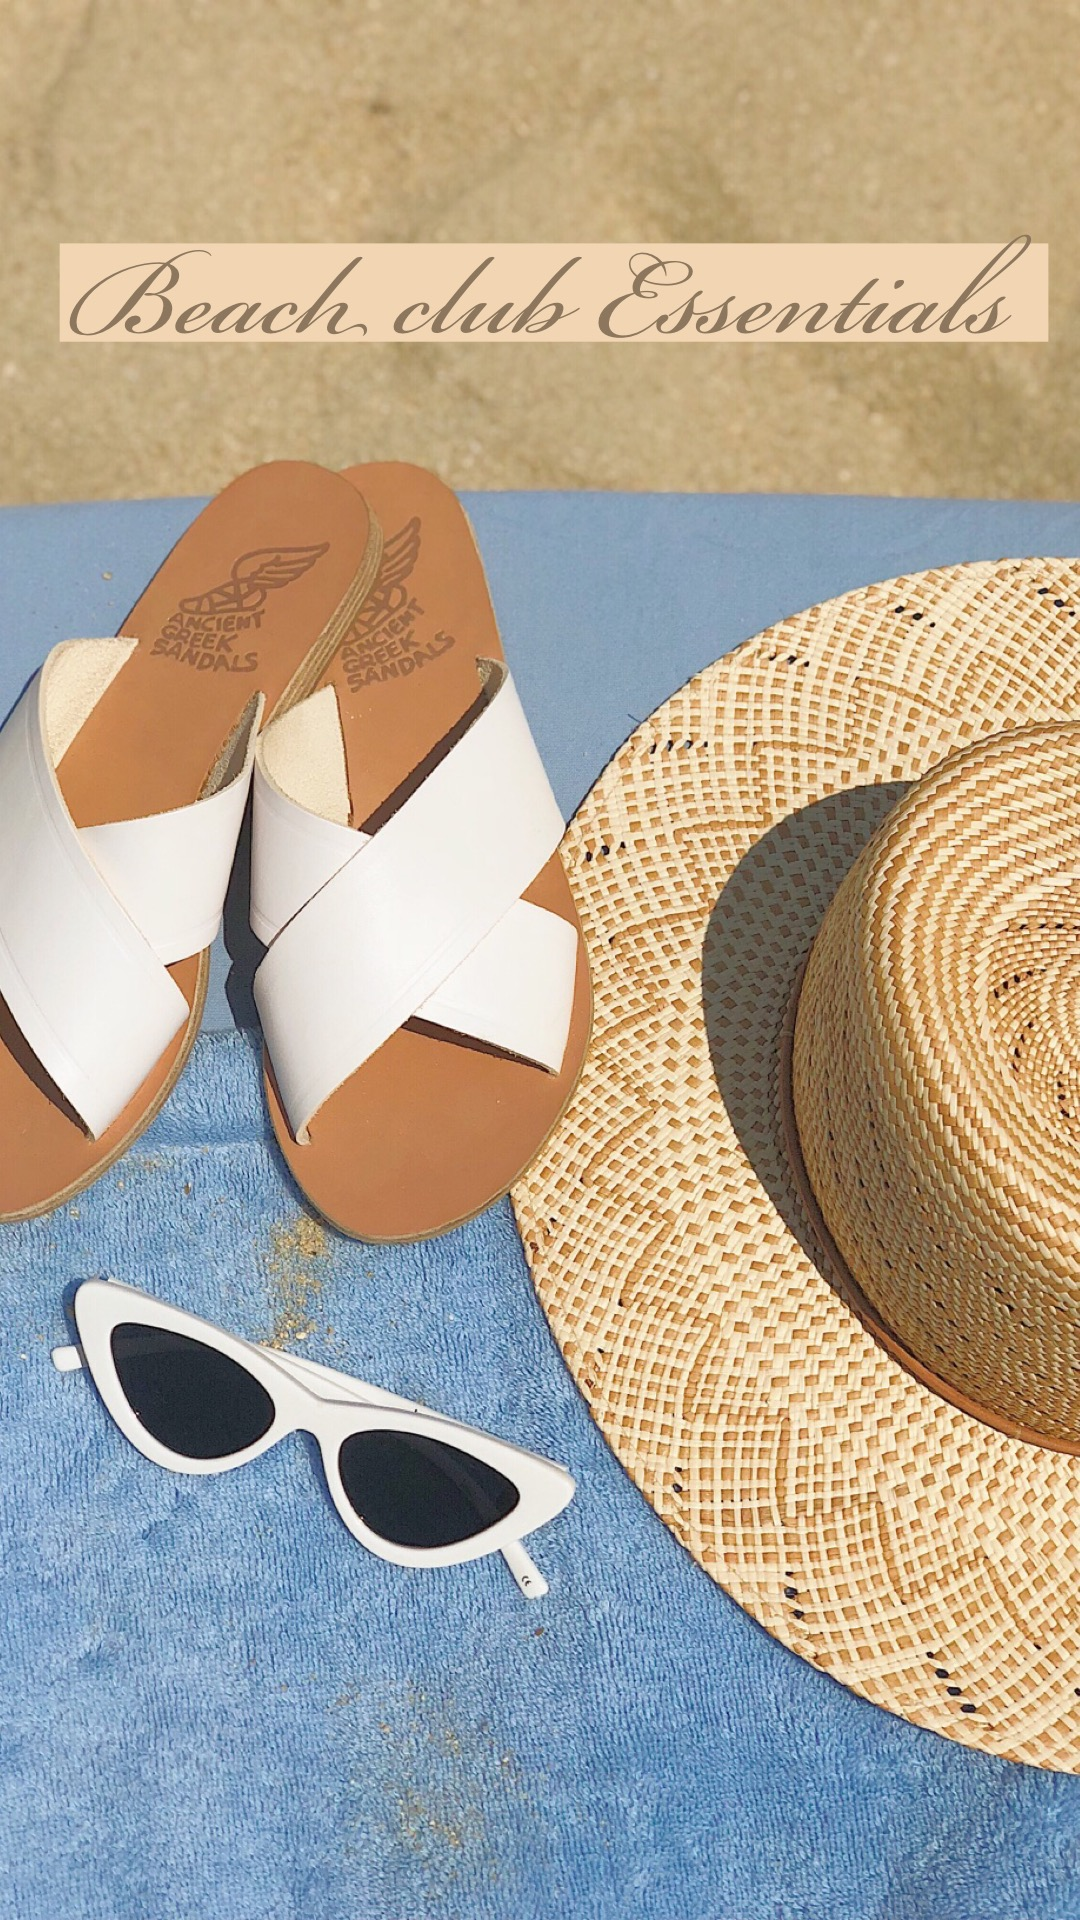 SummerMust-haves! - These accessories tie any outfit together and are so versatile and comfortable.